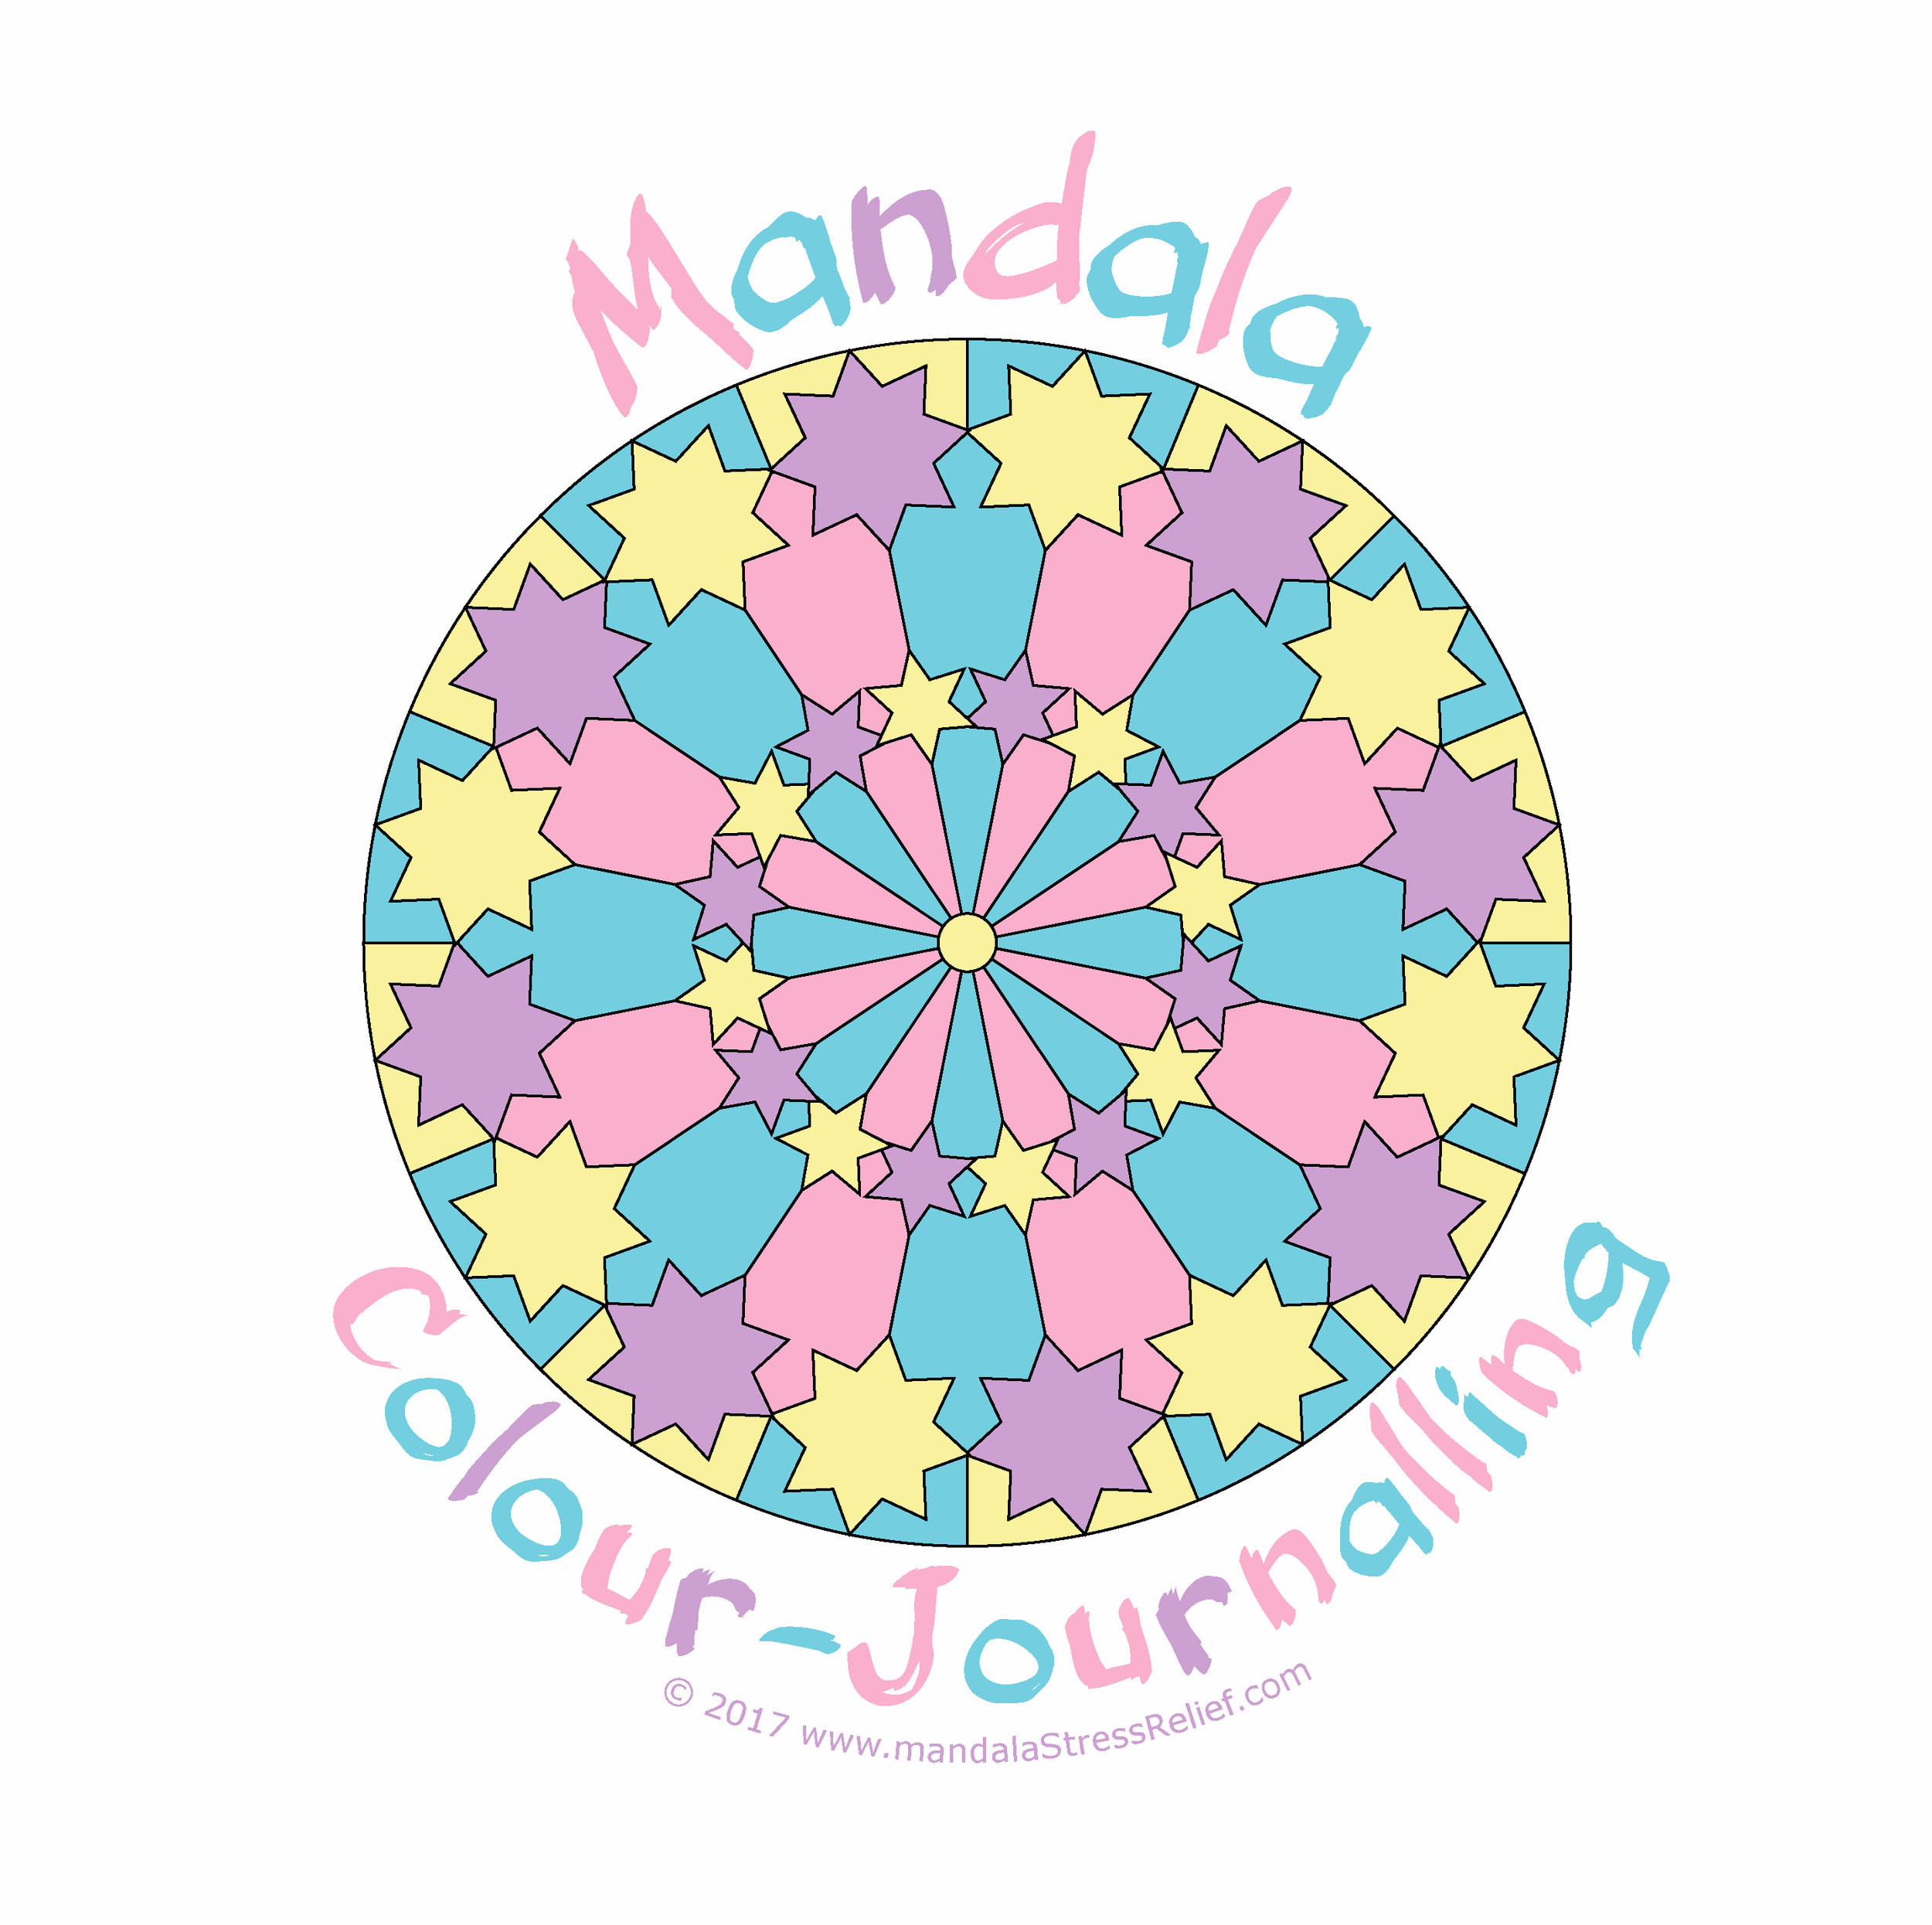 15 Reasons to try Mandala Colour-Journalling (mandala-142B_FullColour2.jpg)